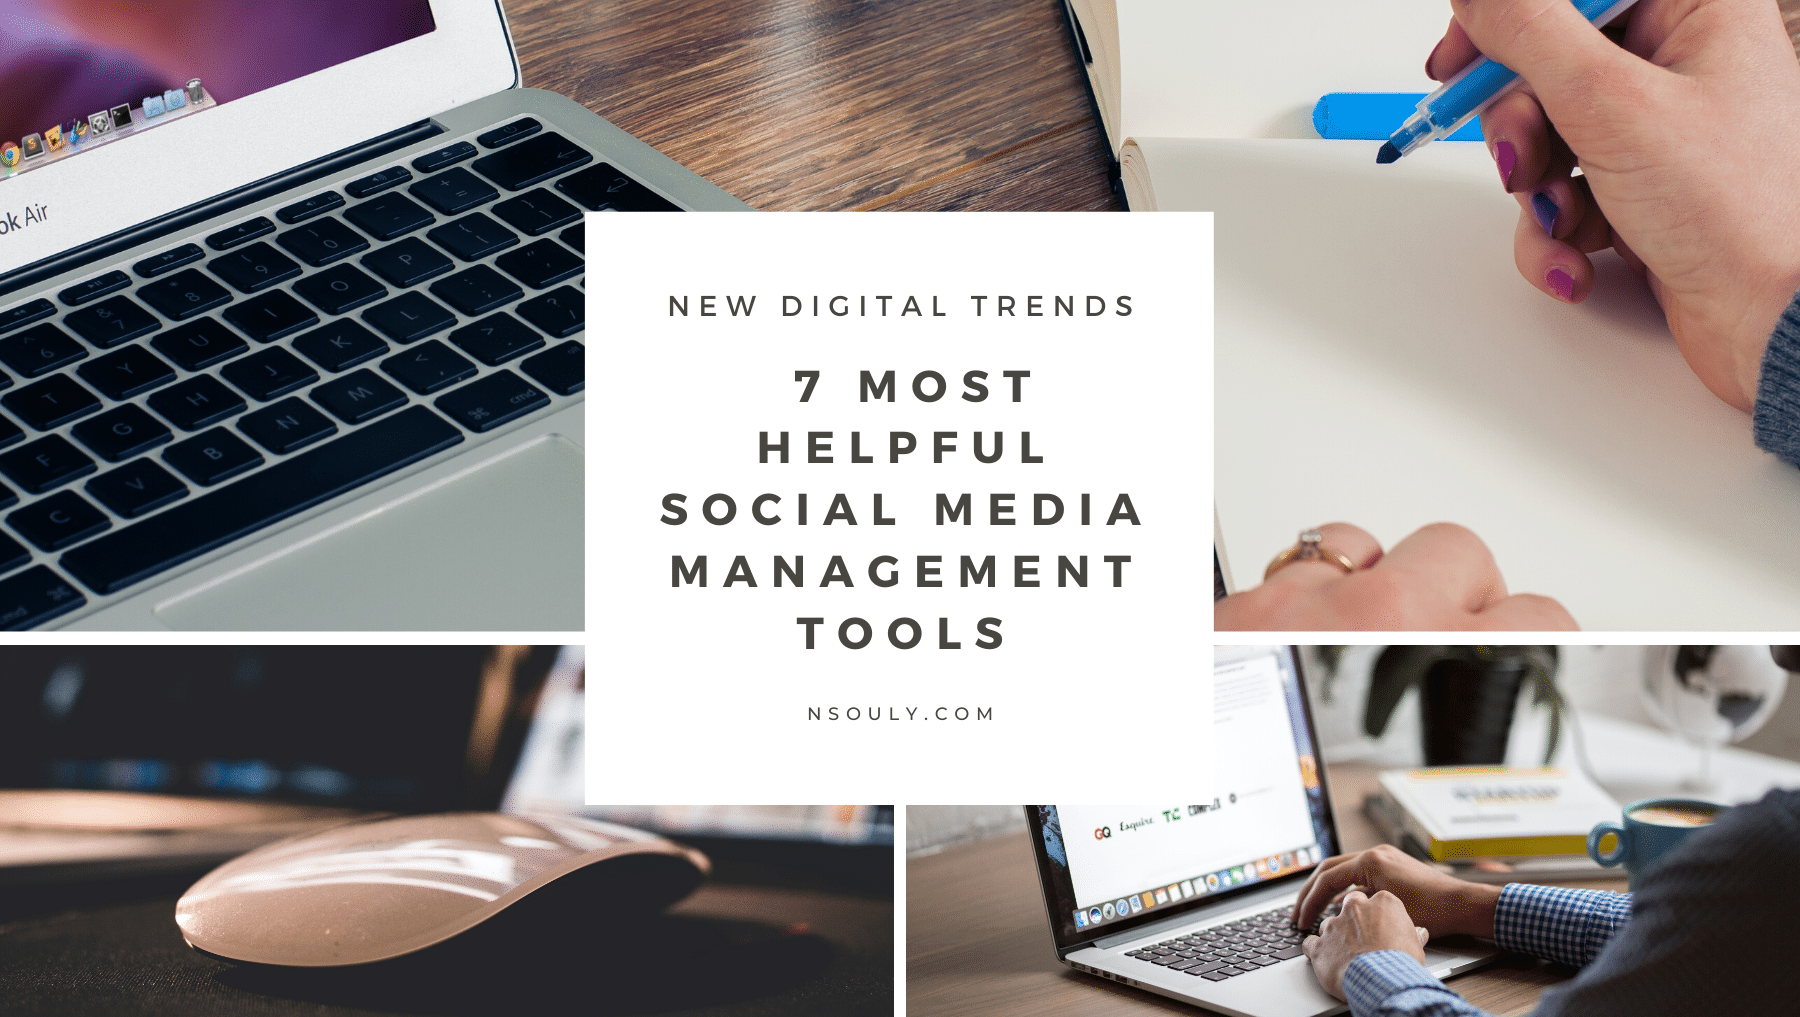 7 Best Social Media Management Tools for Small Business